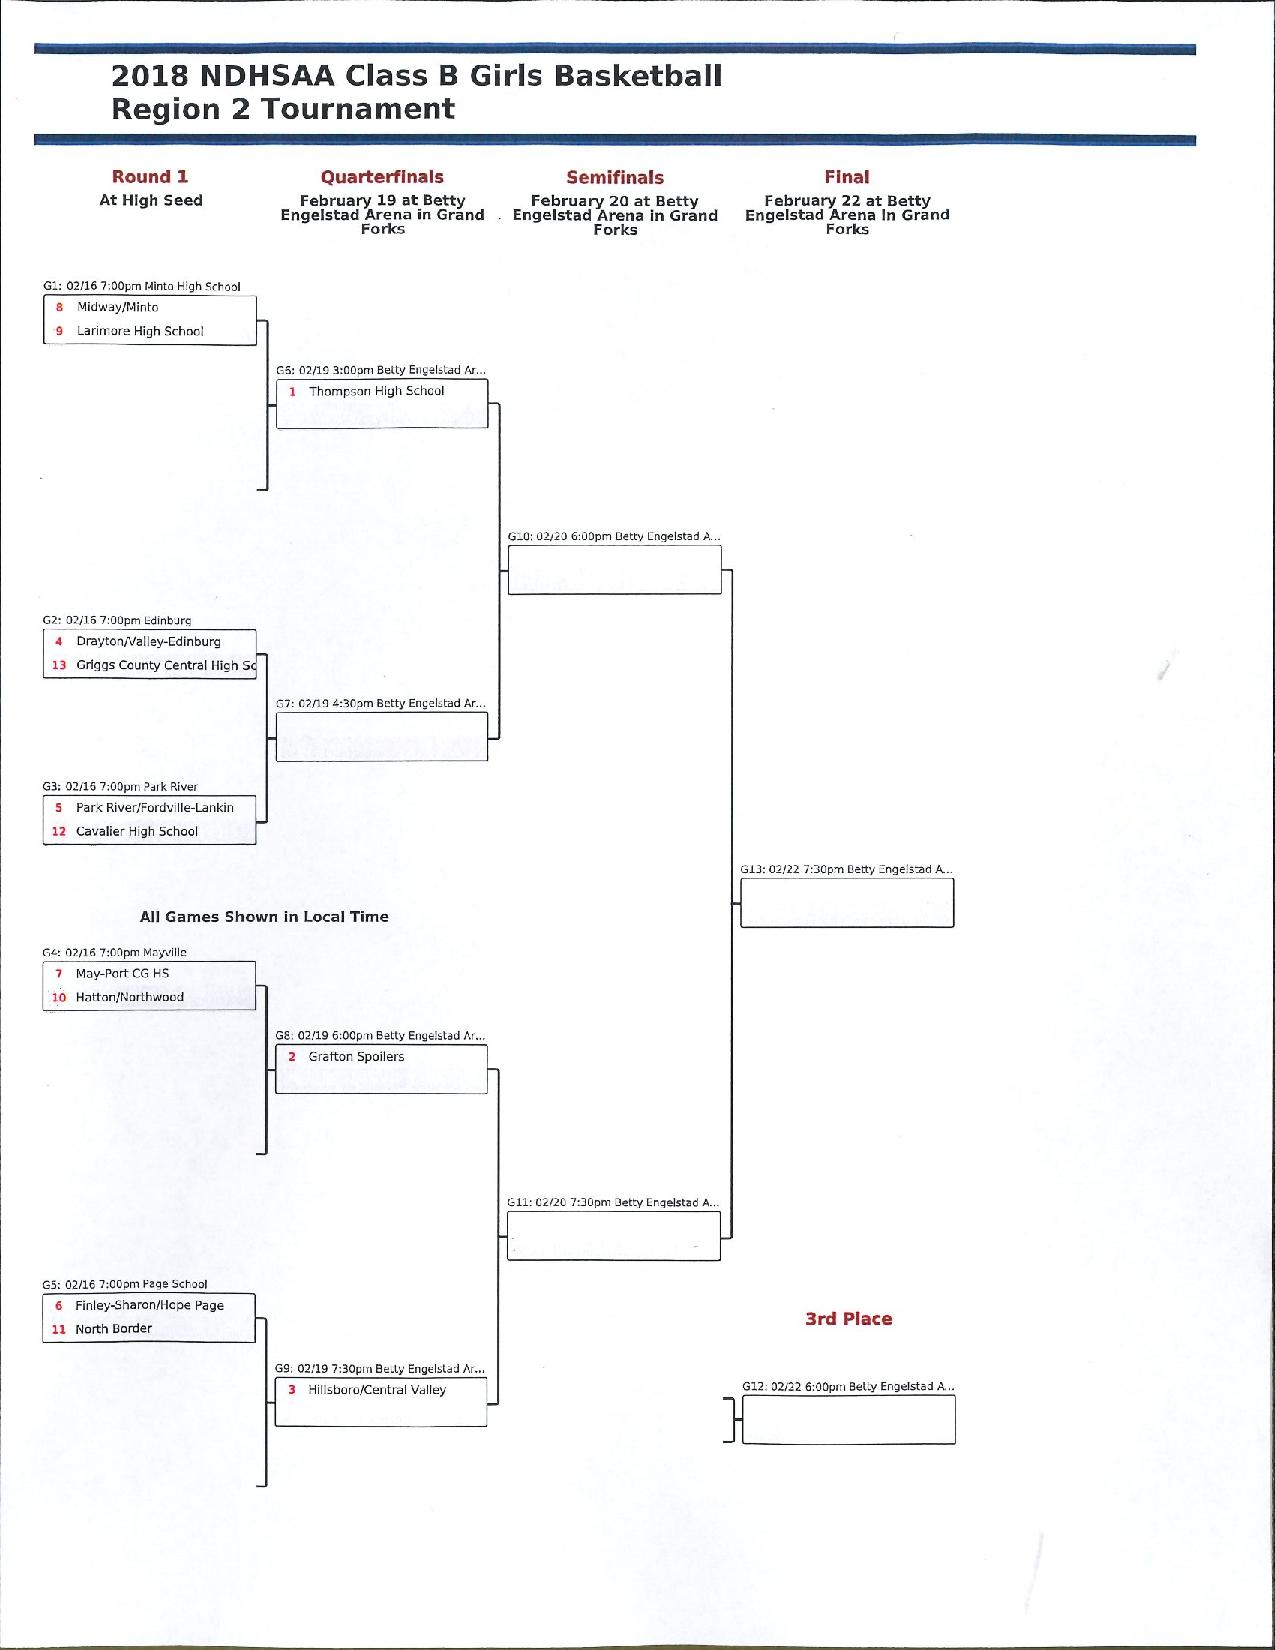 Picture of the Region 2 Tournament Bracket